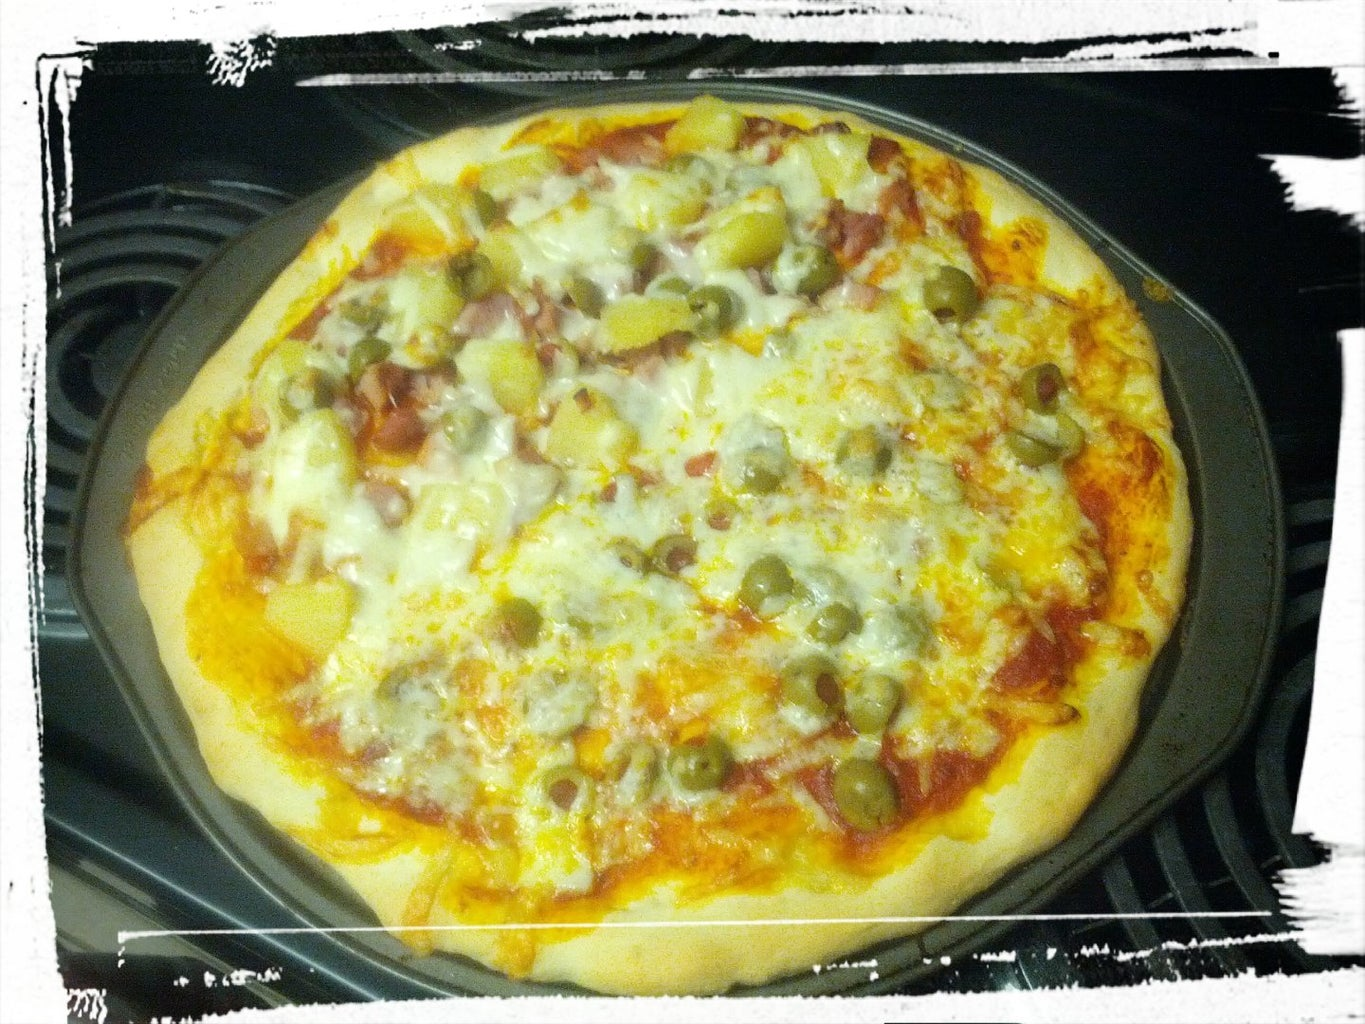 Affordable Date Night: Hawaiian Pizza From Scratch